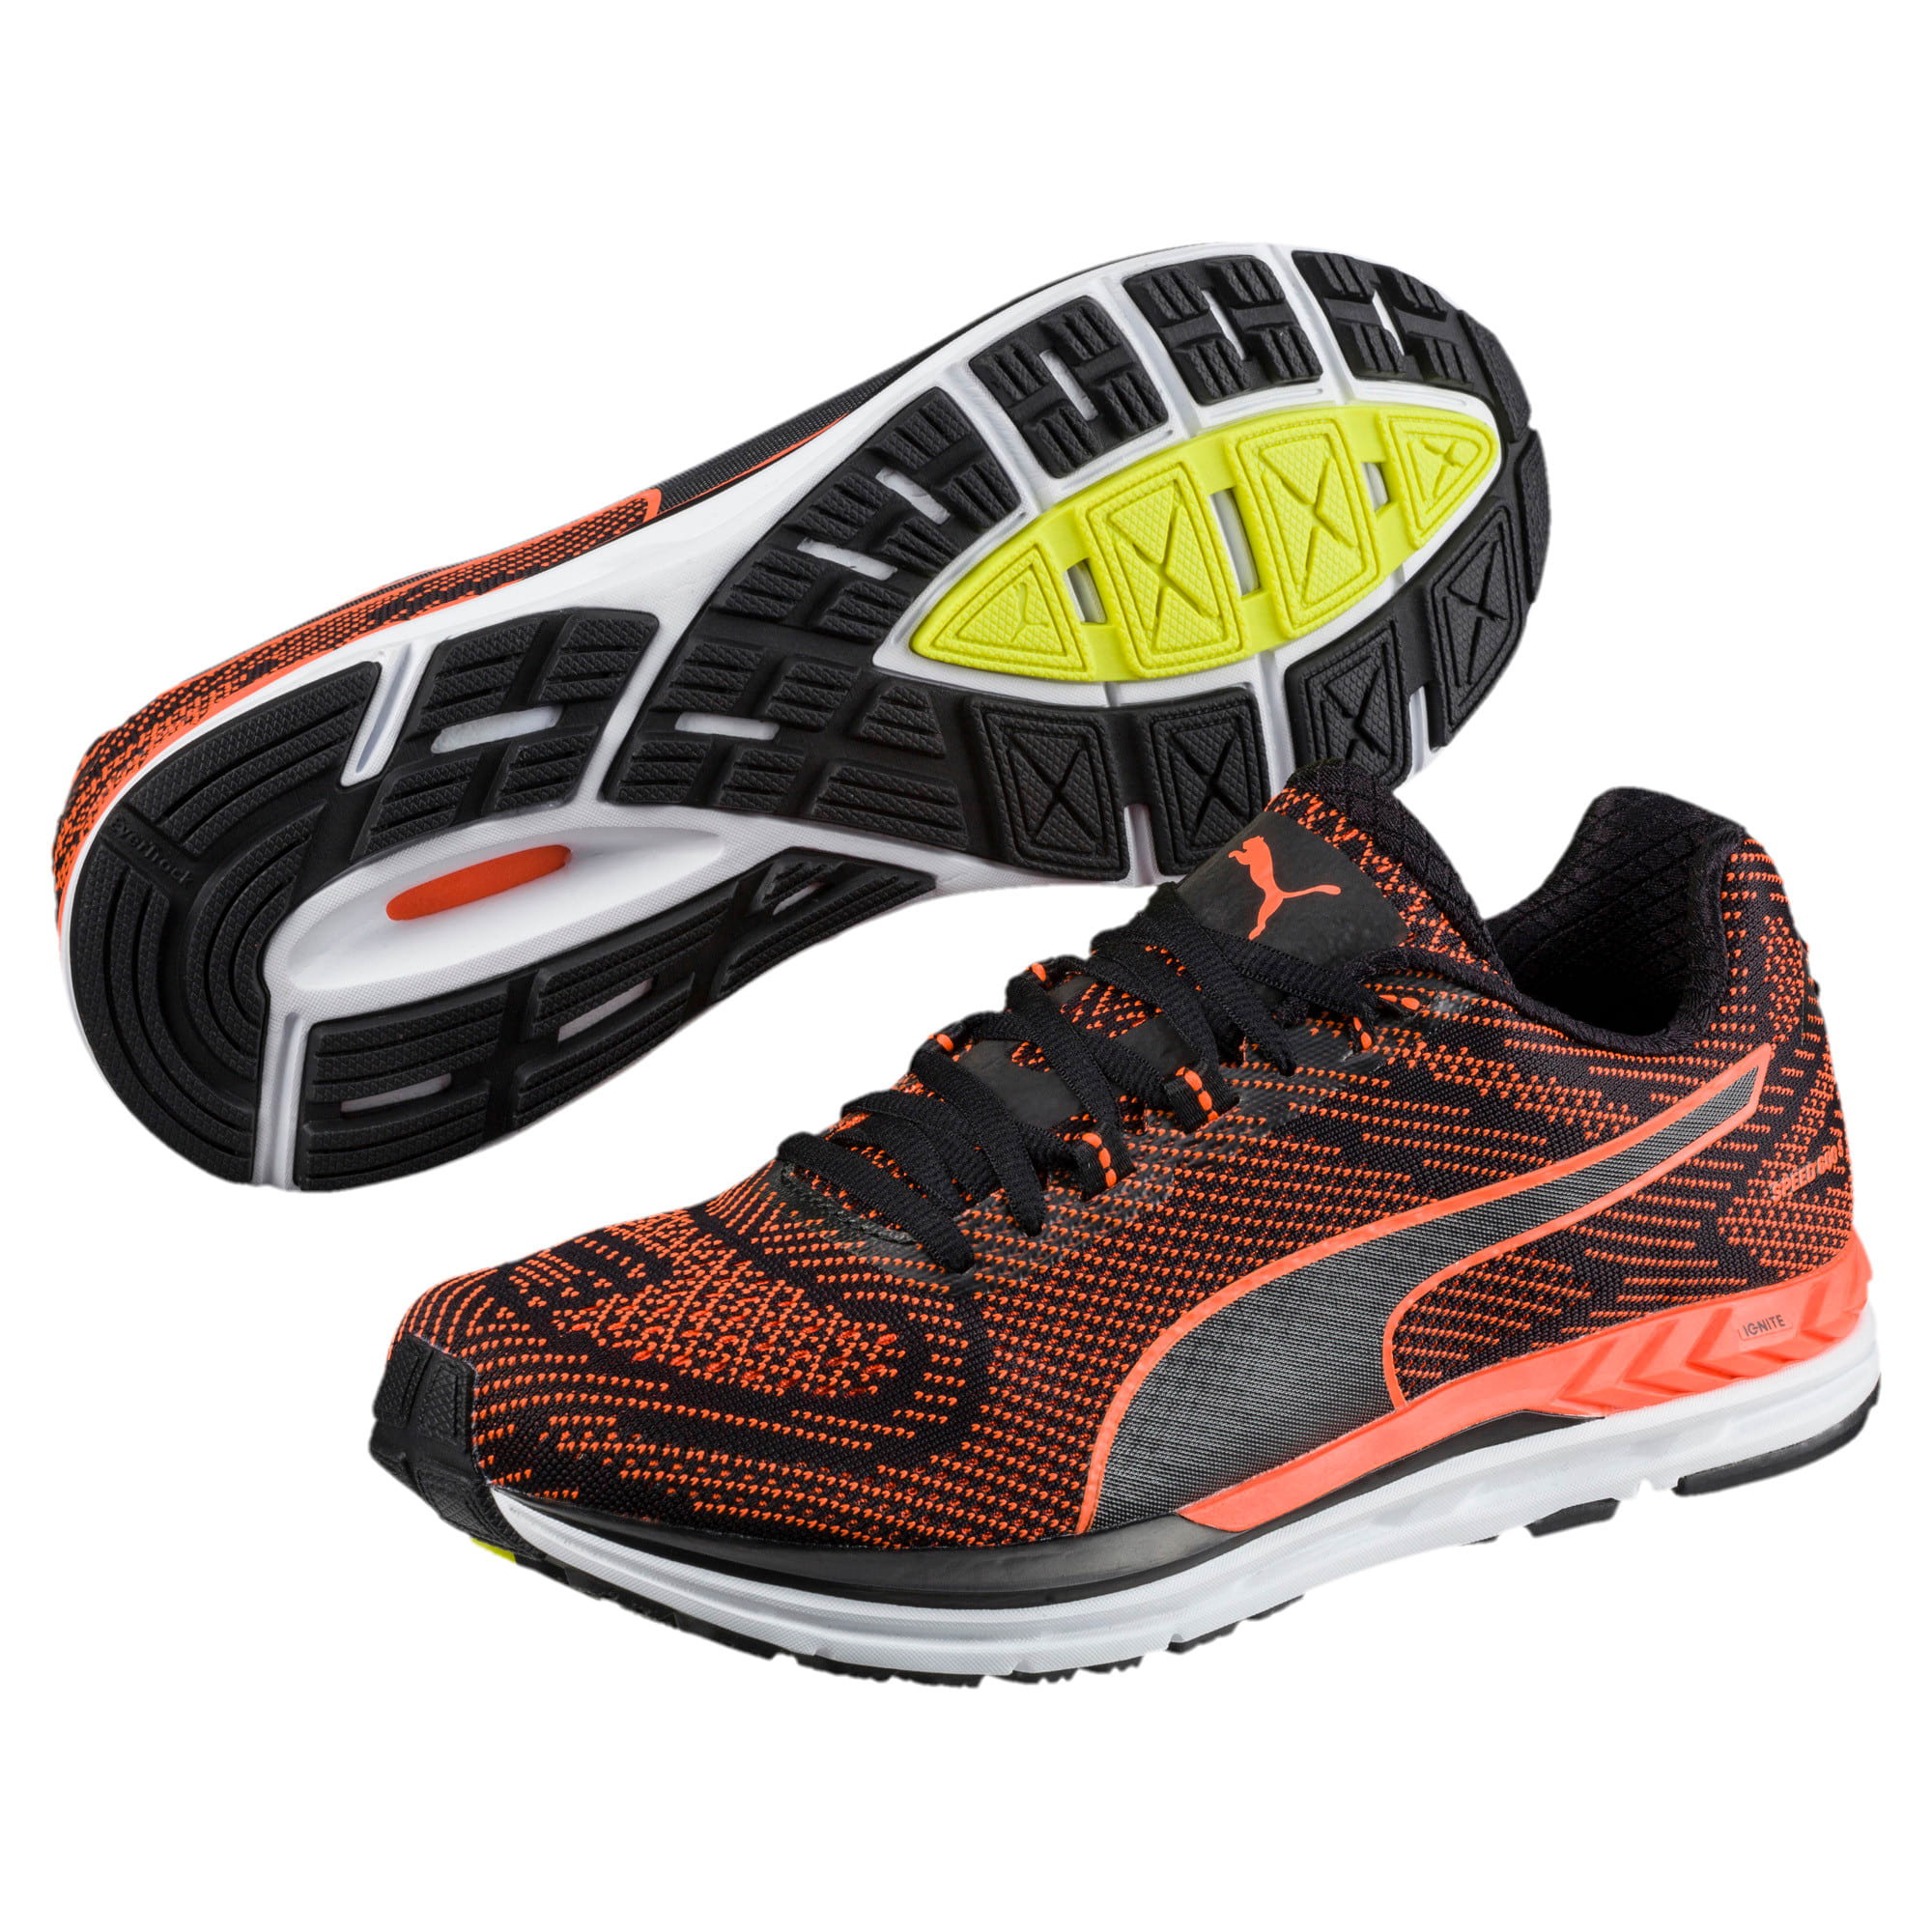 Thumbnail 2 of Speed 600 S IGNITE Men's Running Shoes, Puma Black-Shocking Orange, medium-IND